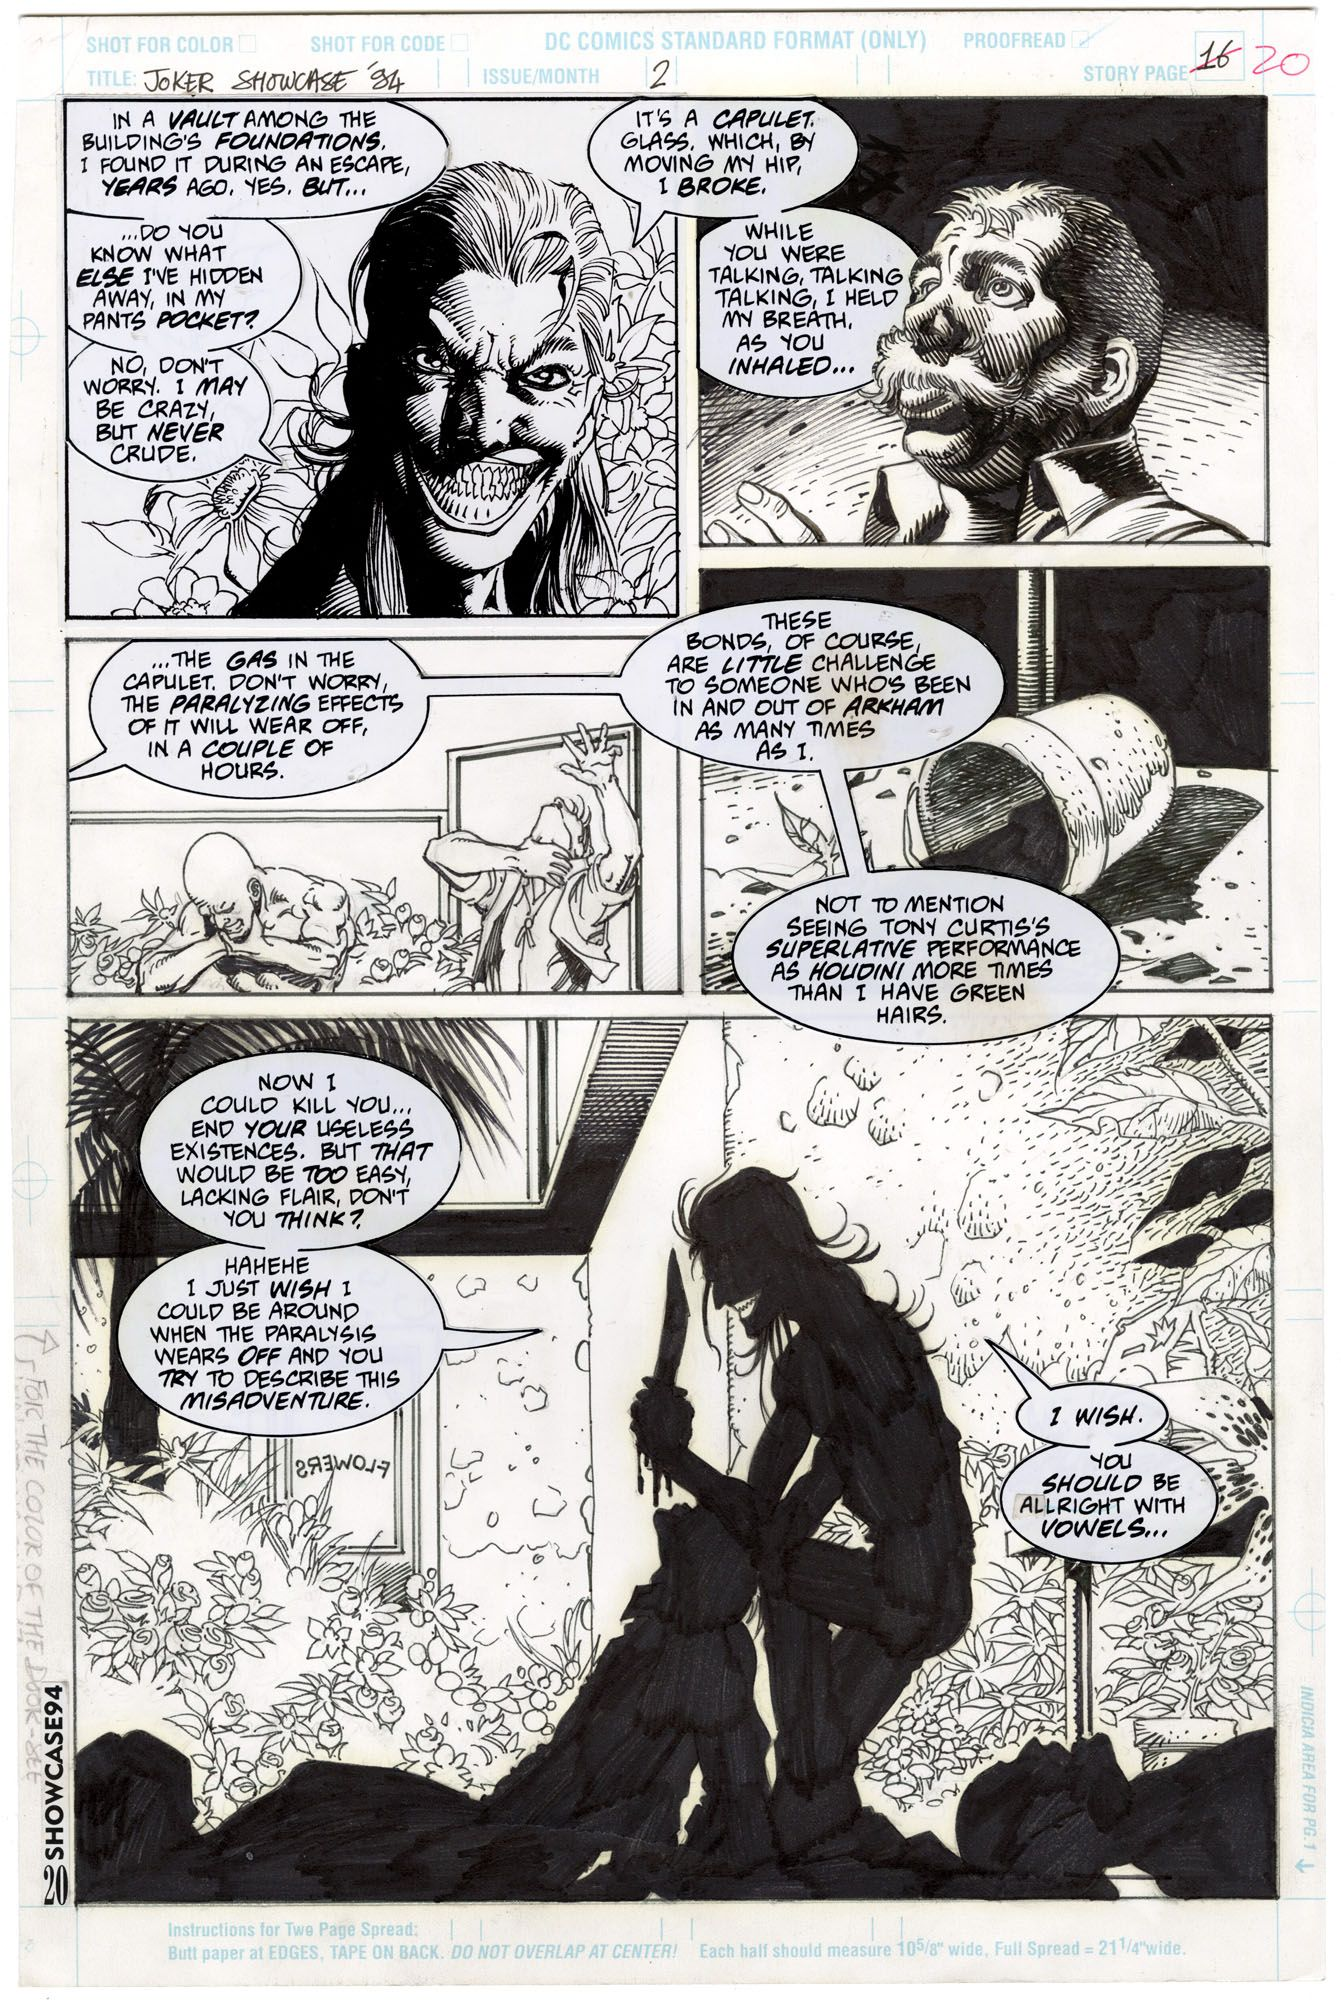 I almost feel I have to sensor this page it's so gruesome. The Joker at his most macabre.